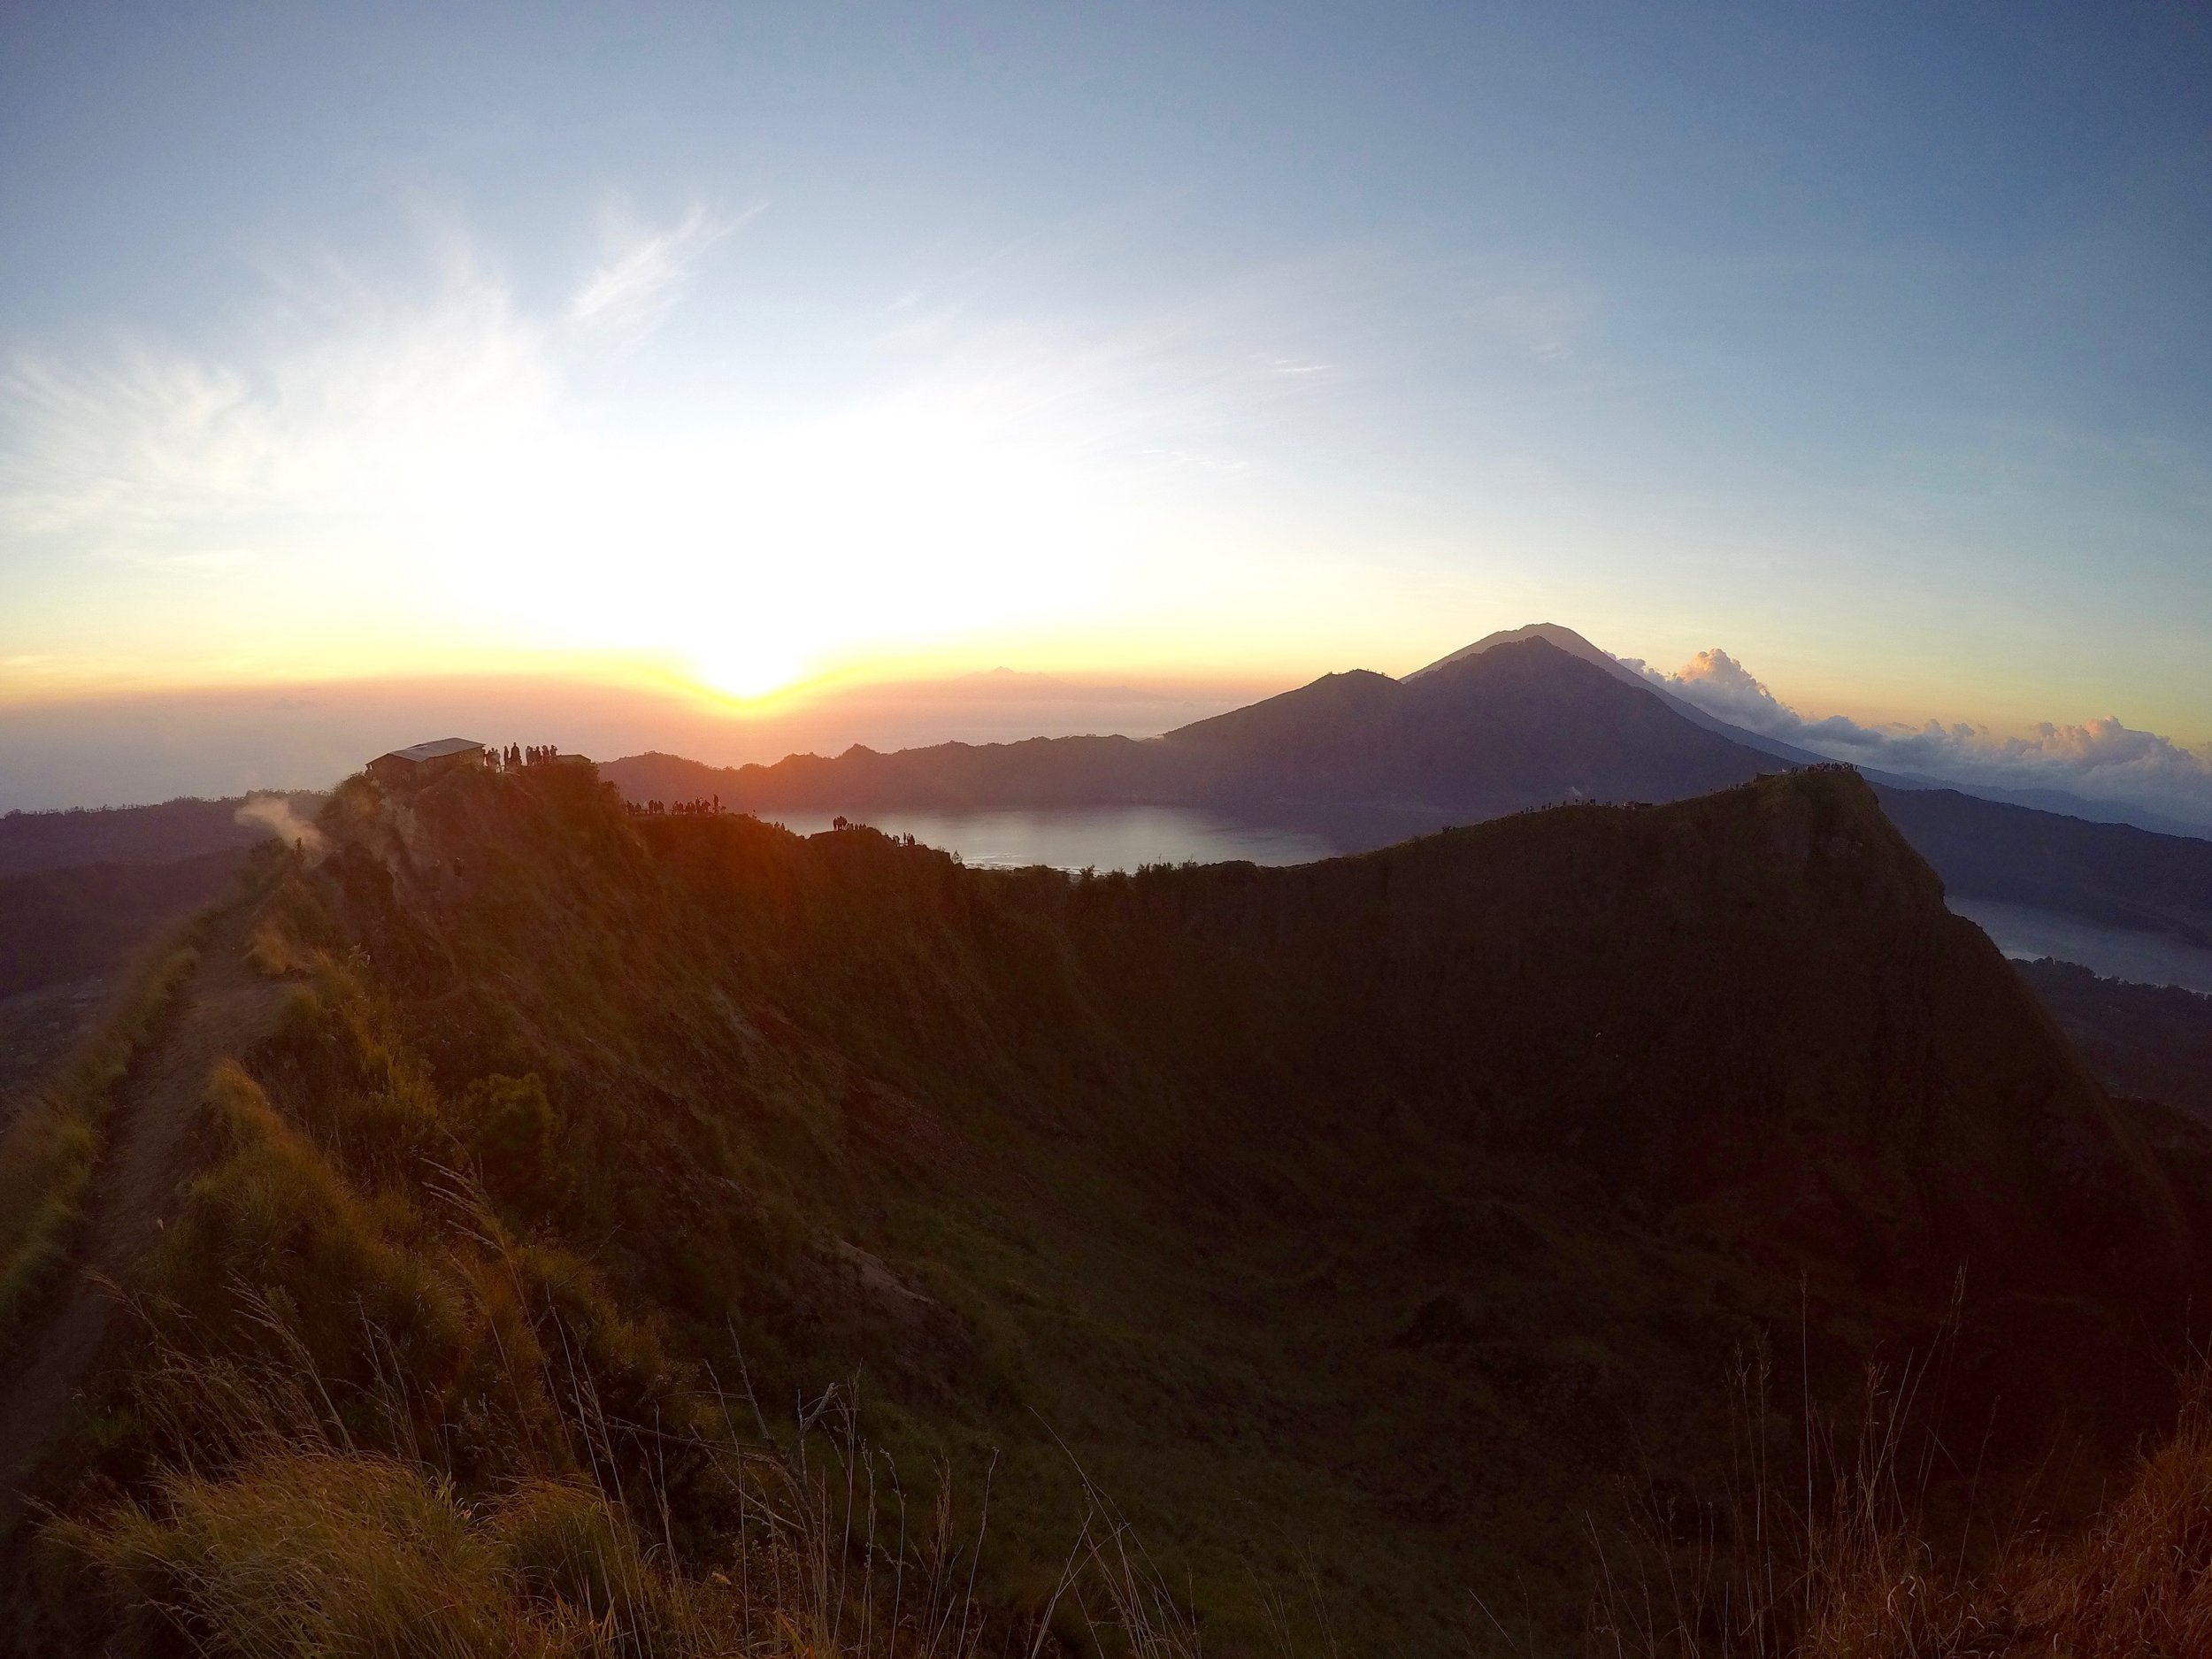 Watching my first volcano sunrise